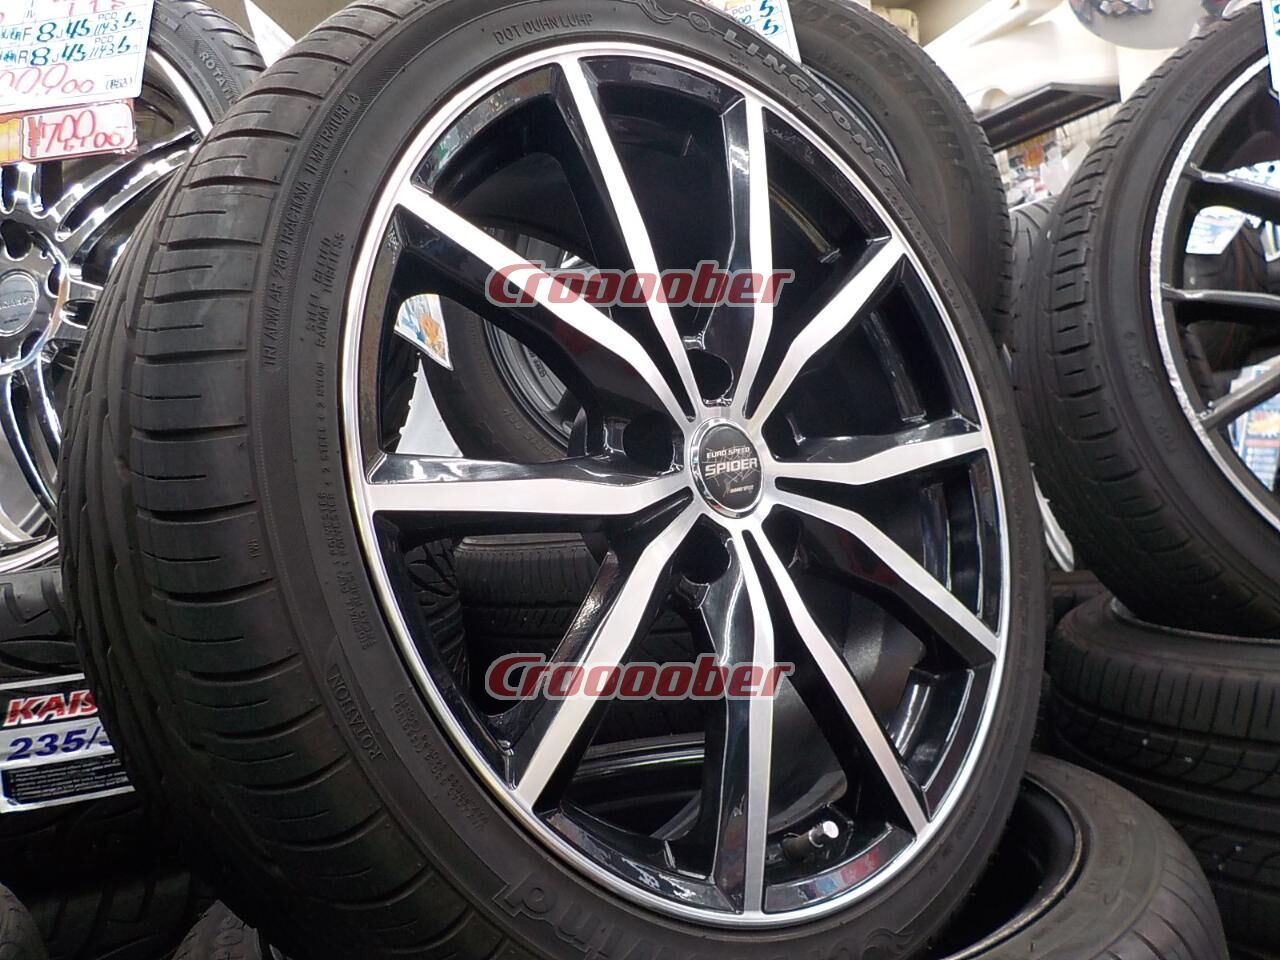 Linglong Crosswind Tires >> Manaray Spider Linglong Cross Wind Tire Is Out Of Warranty 18 Inch Rim Tire Sets For Sale Croooober